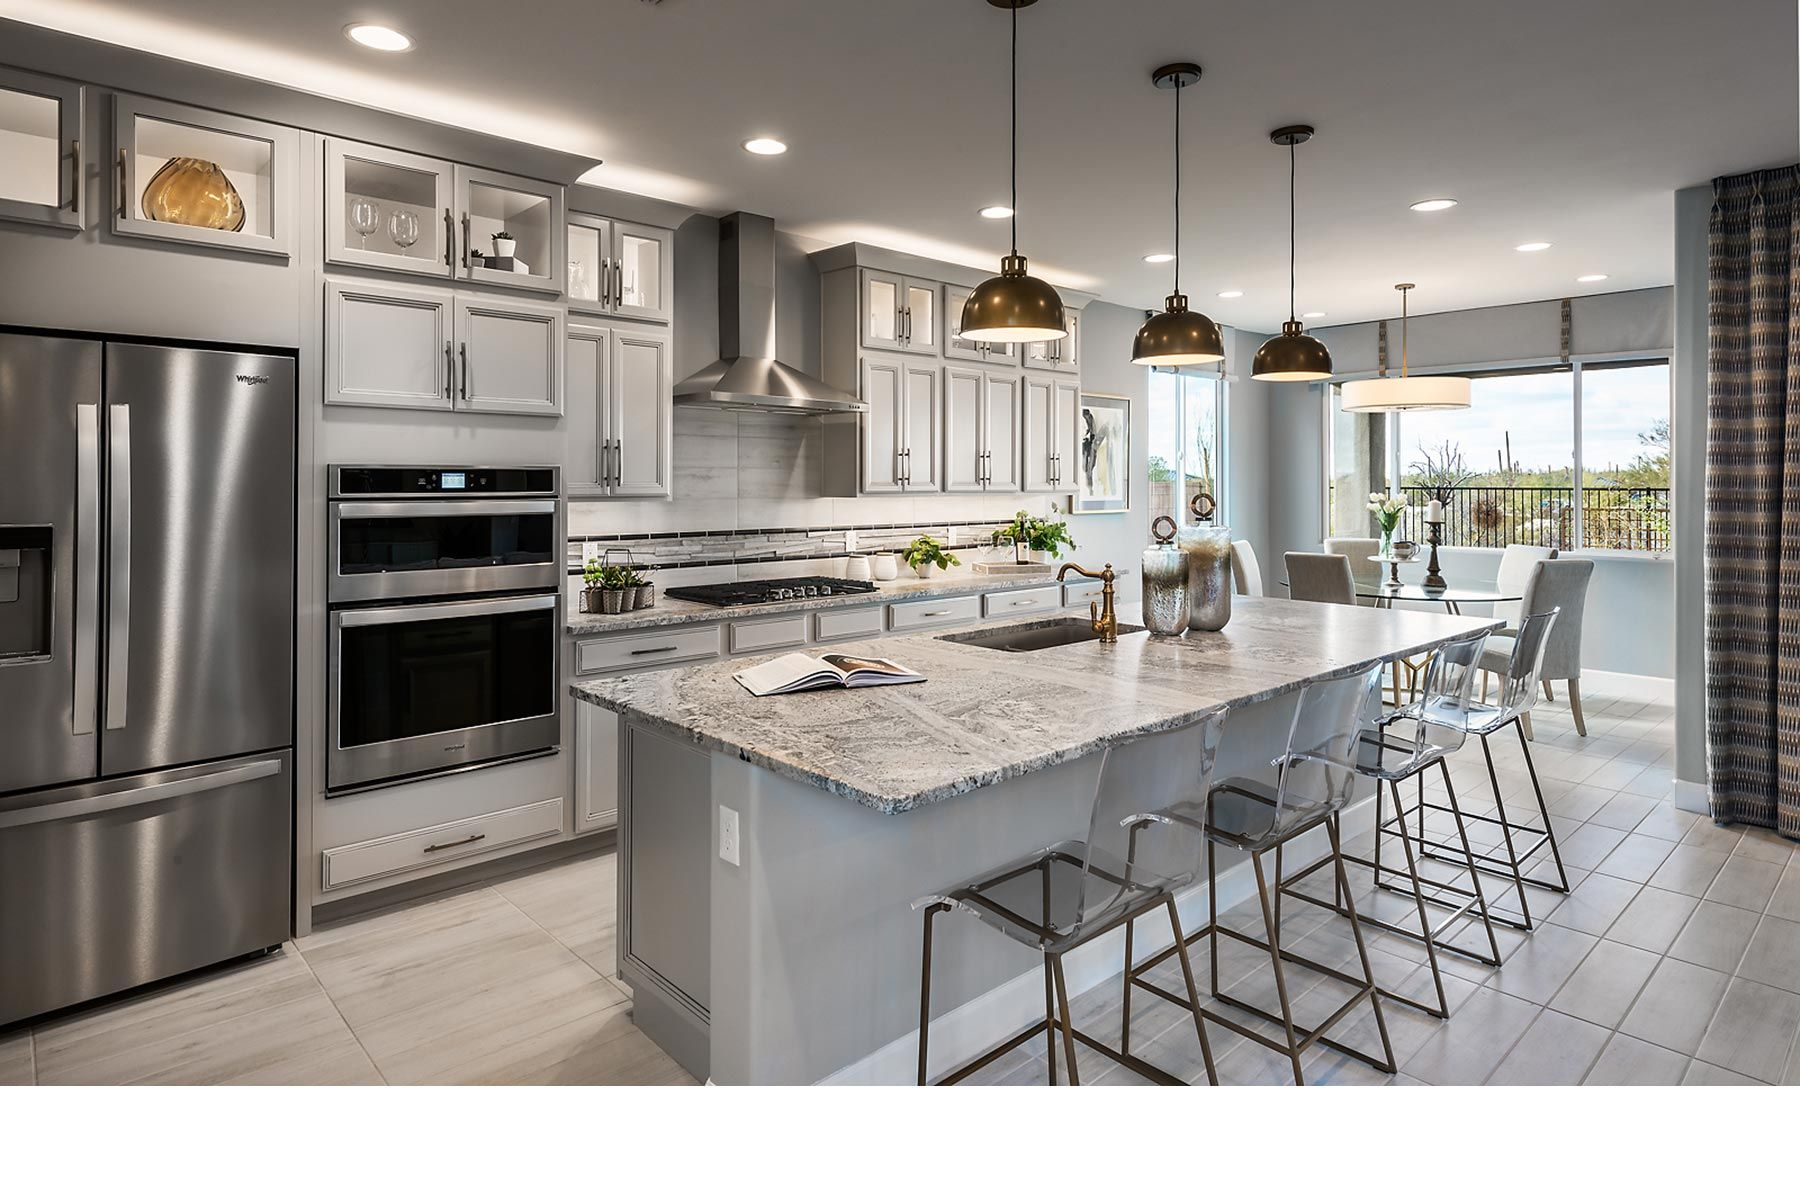 Kitchen featured in the Peralta By Mattamy Homes in Tucson, AZ